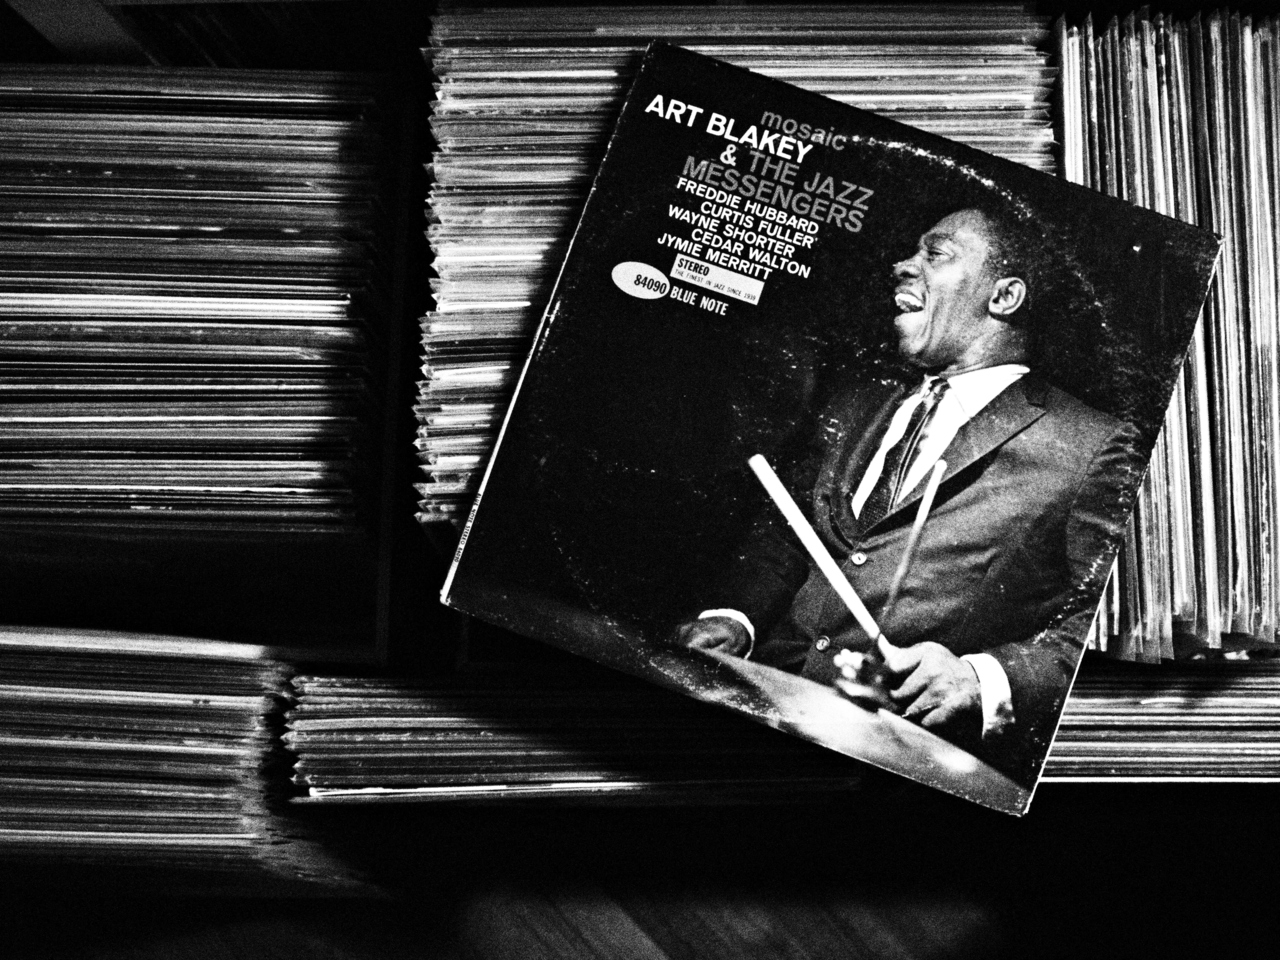 the influence of jazz musicians on the civil rights movement -term third stream by gunther schuller while lecturing about attempts of musicians to cross the influence of jazz,  to civil rights, anti-vietman war movement,.